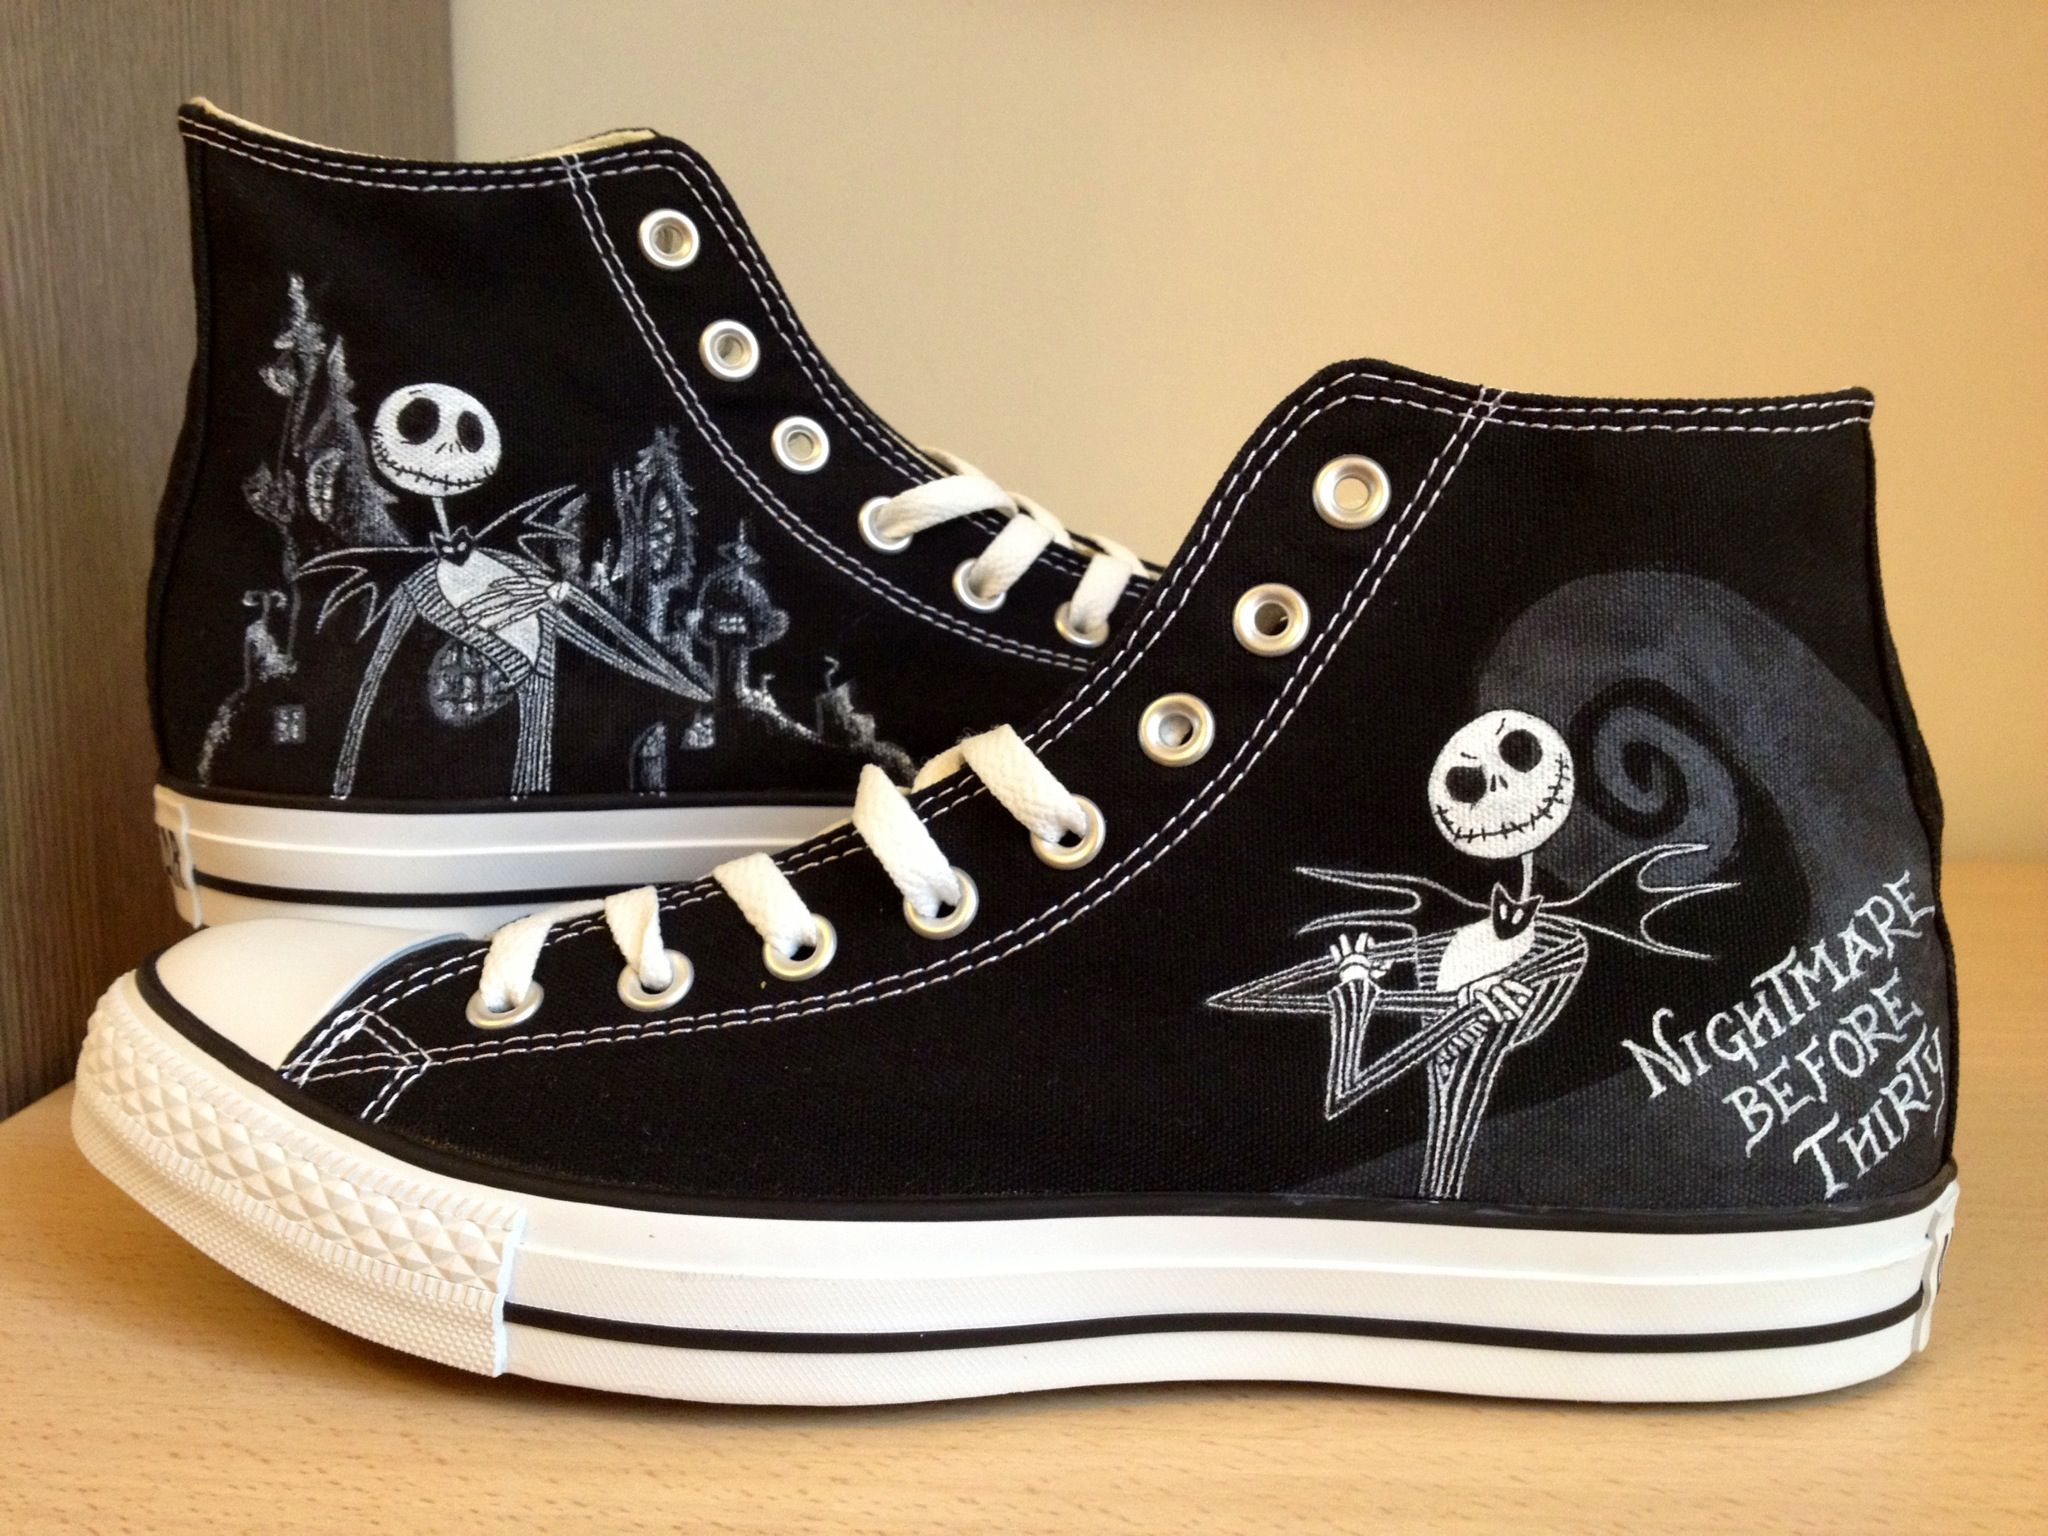 644f45ac096d Jack Skellington hand painted converse high tops. Outstanding job on these!